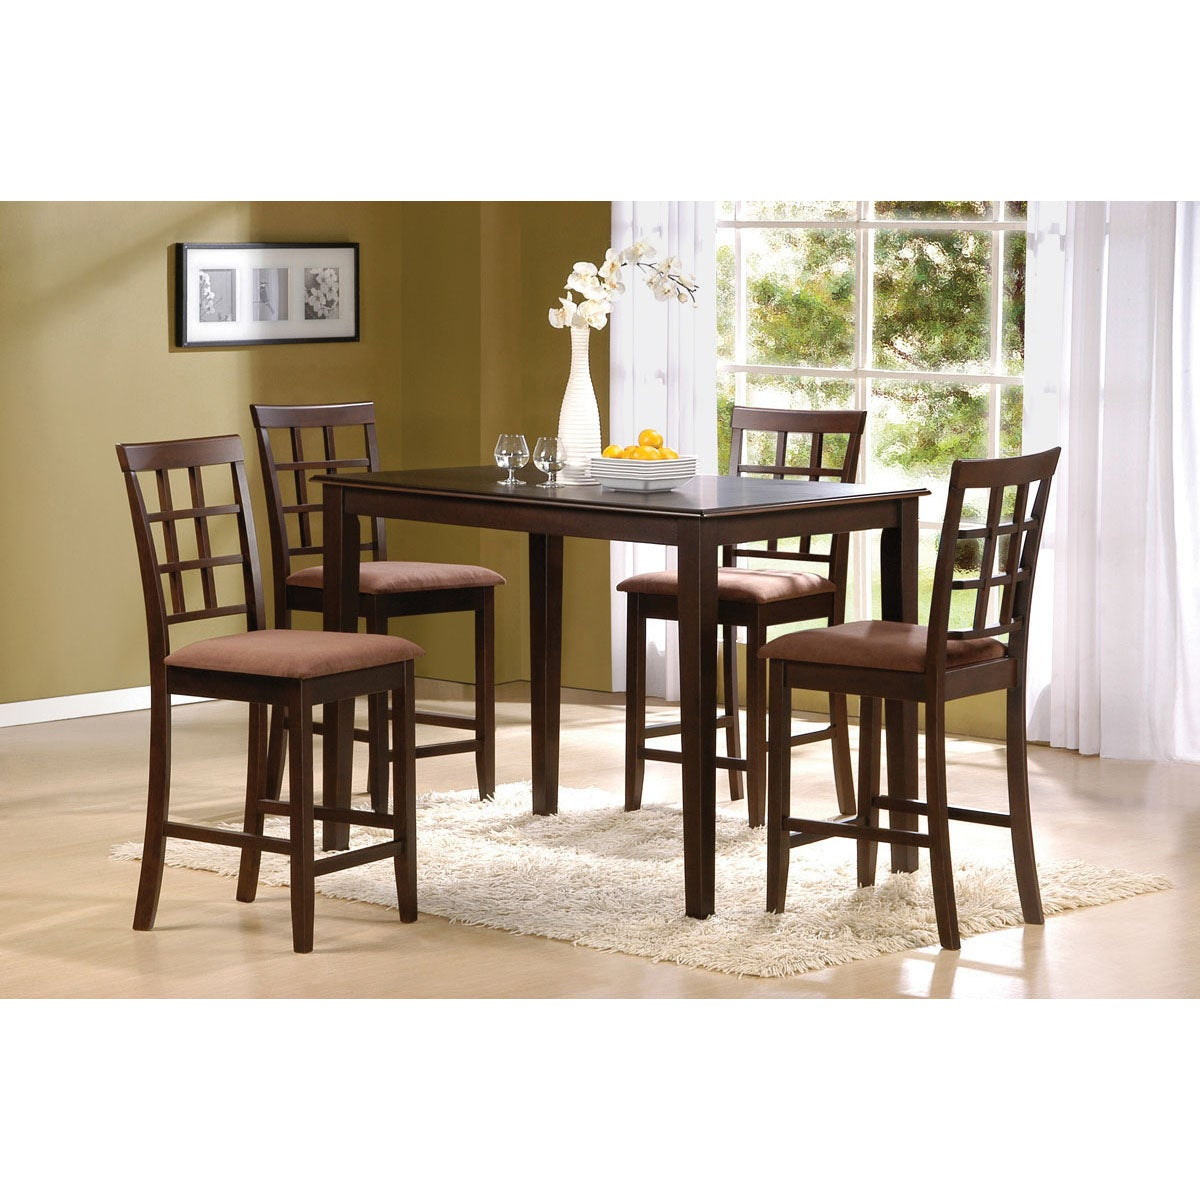 Cardiff 5 Piece Espresso Finish Pack Counter Height Dining Table Set